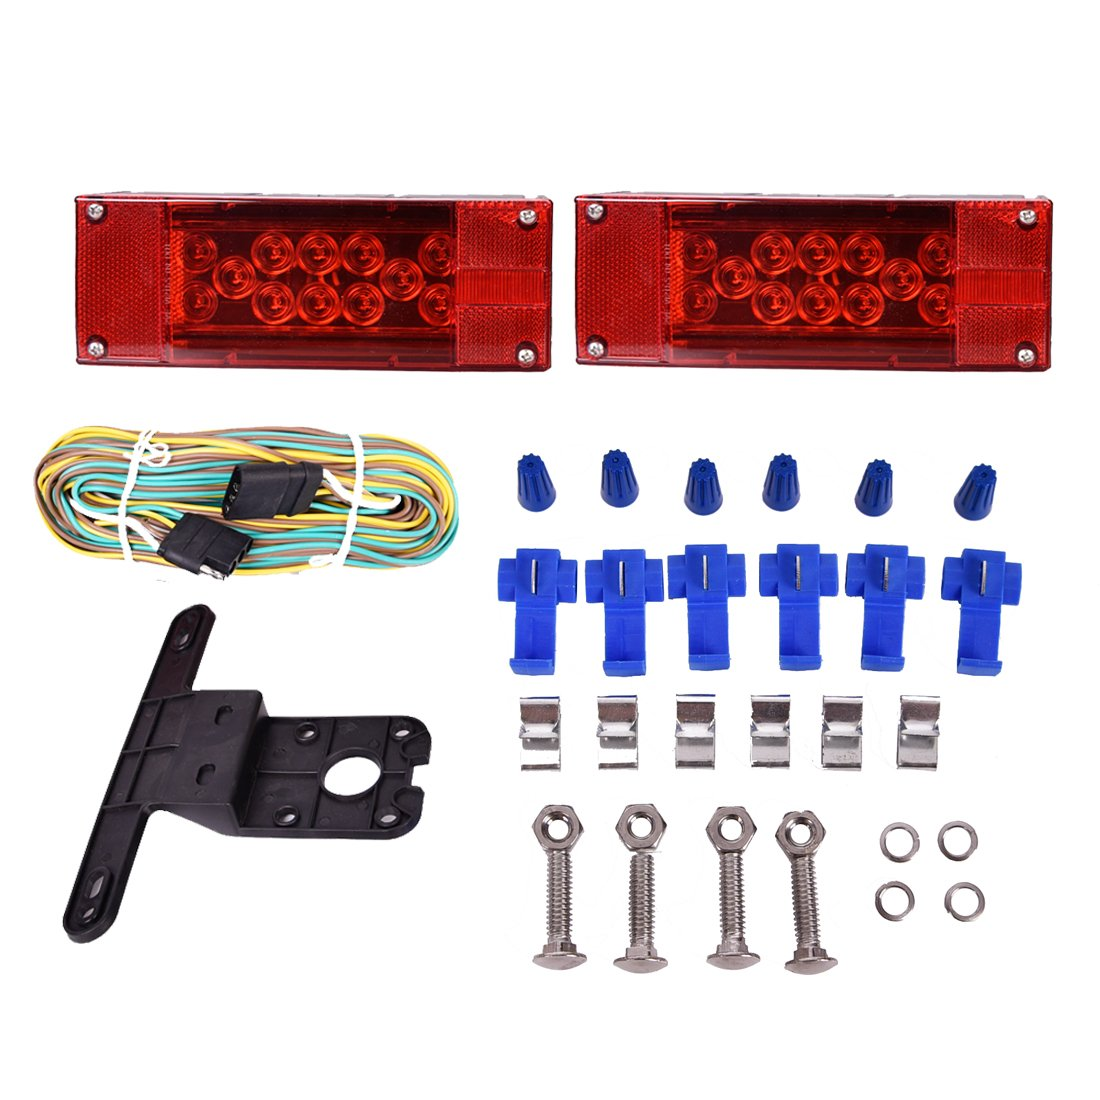 trailer led lights amazon comczc auto 12v led low profile submersible rectangular trailer light kit tail stop turn running lights